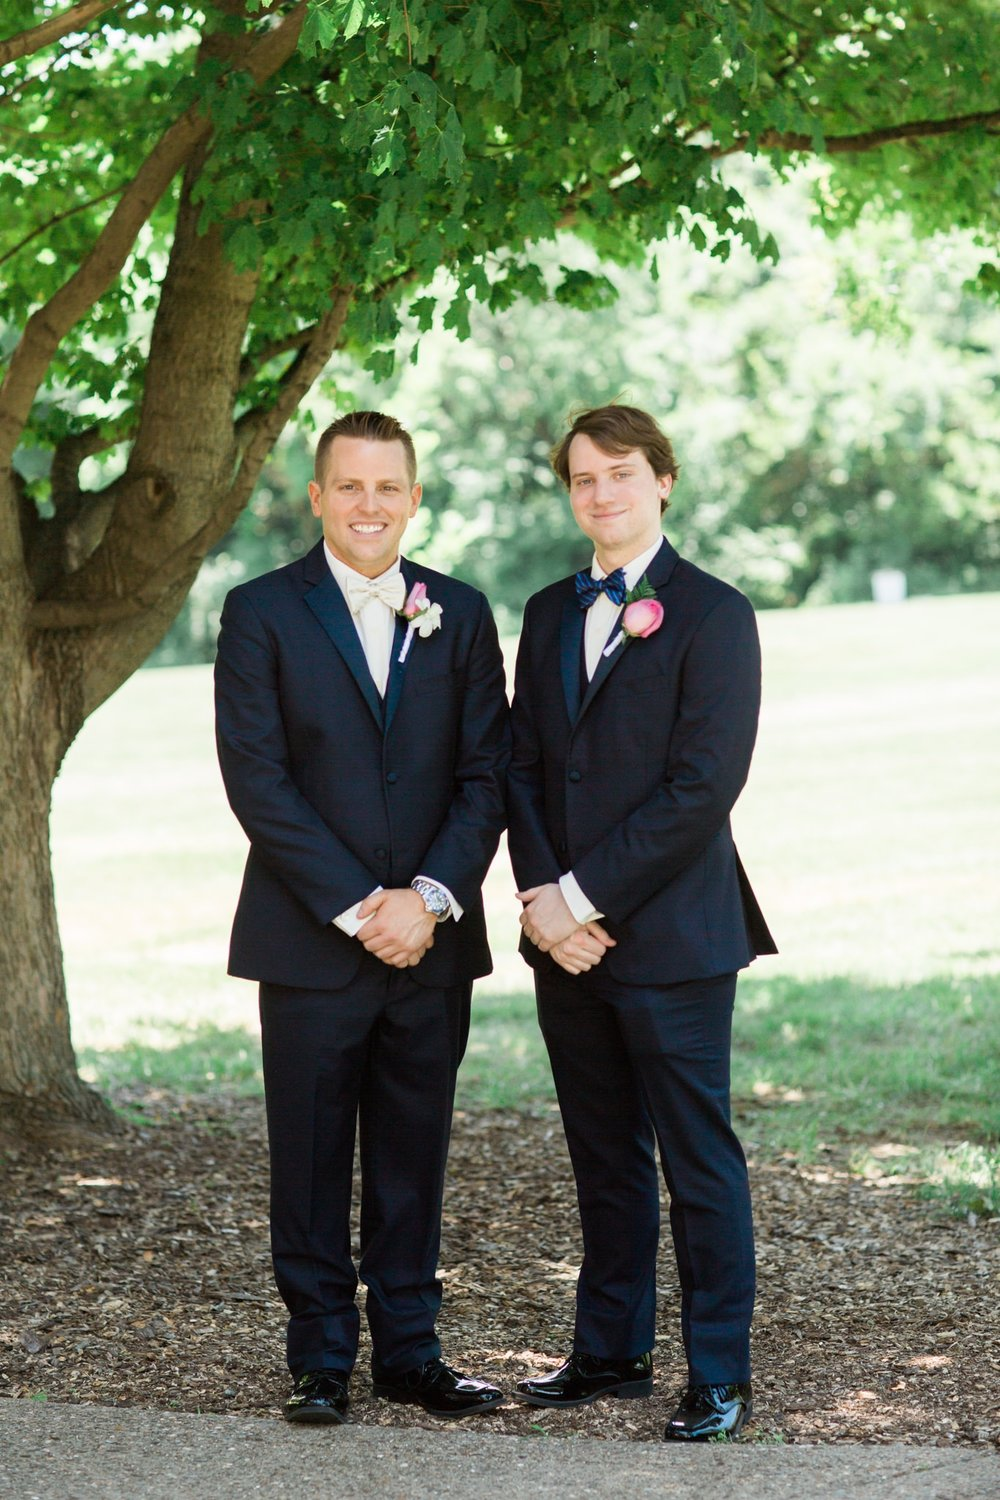 Groom and his groomsman portrait at St. Agnes Catholic Church under a tree.